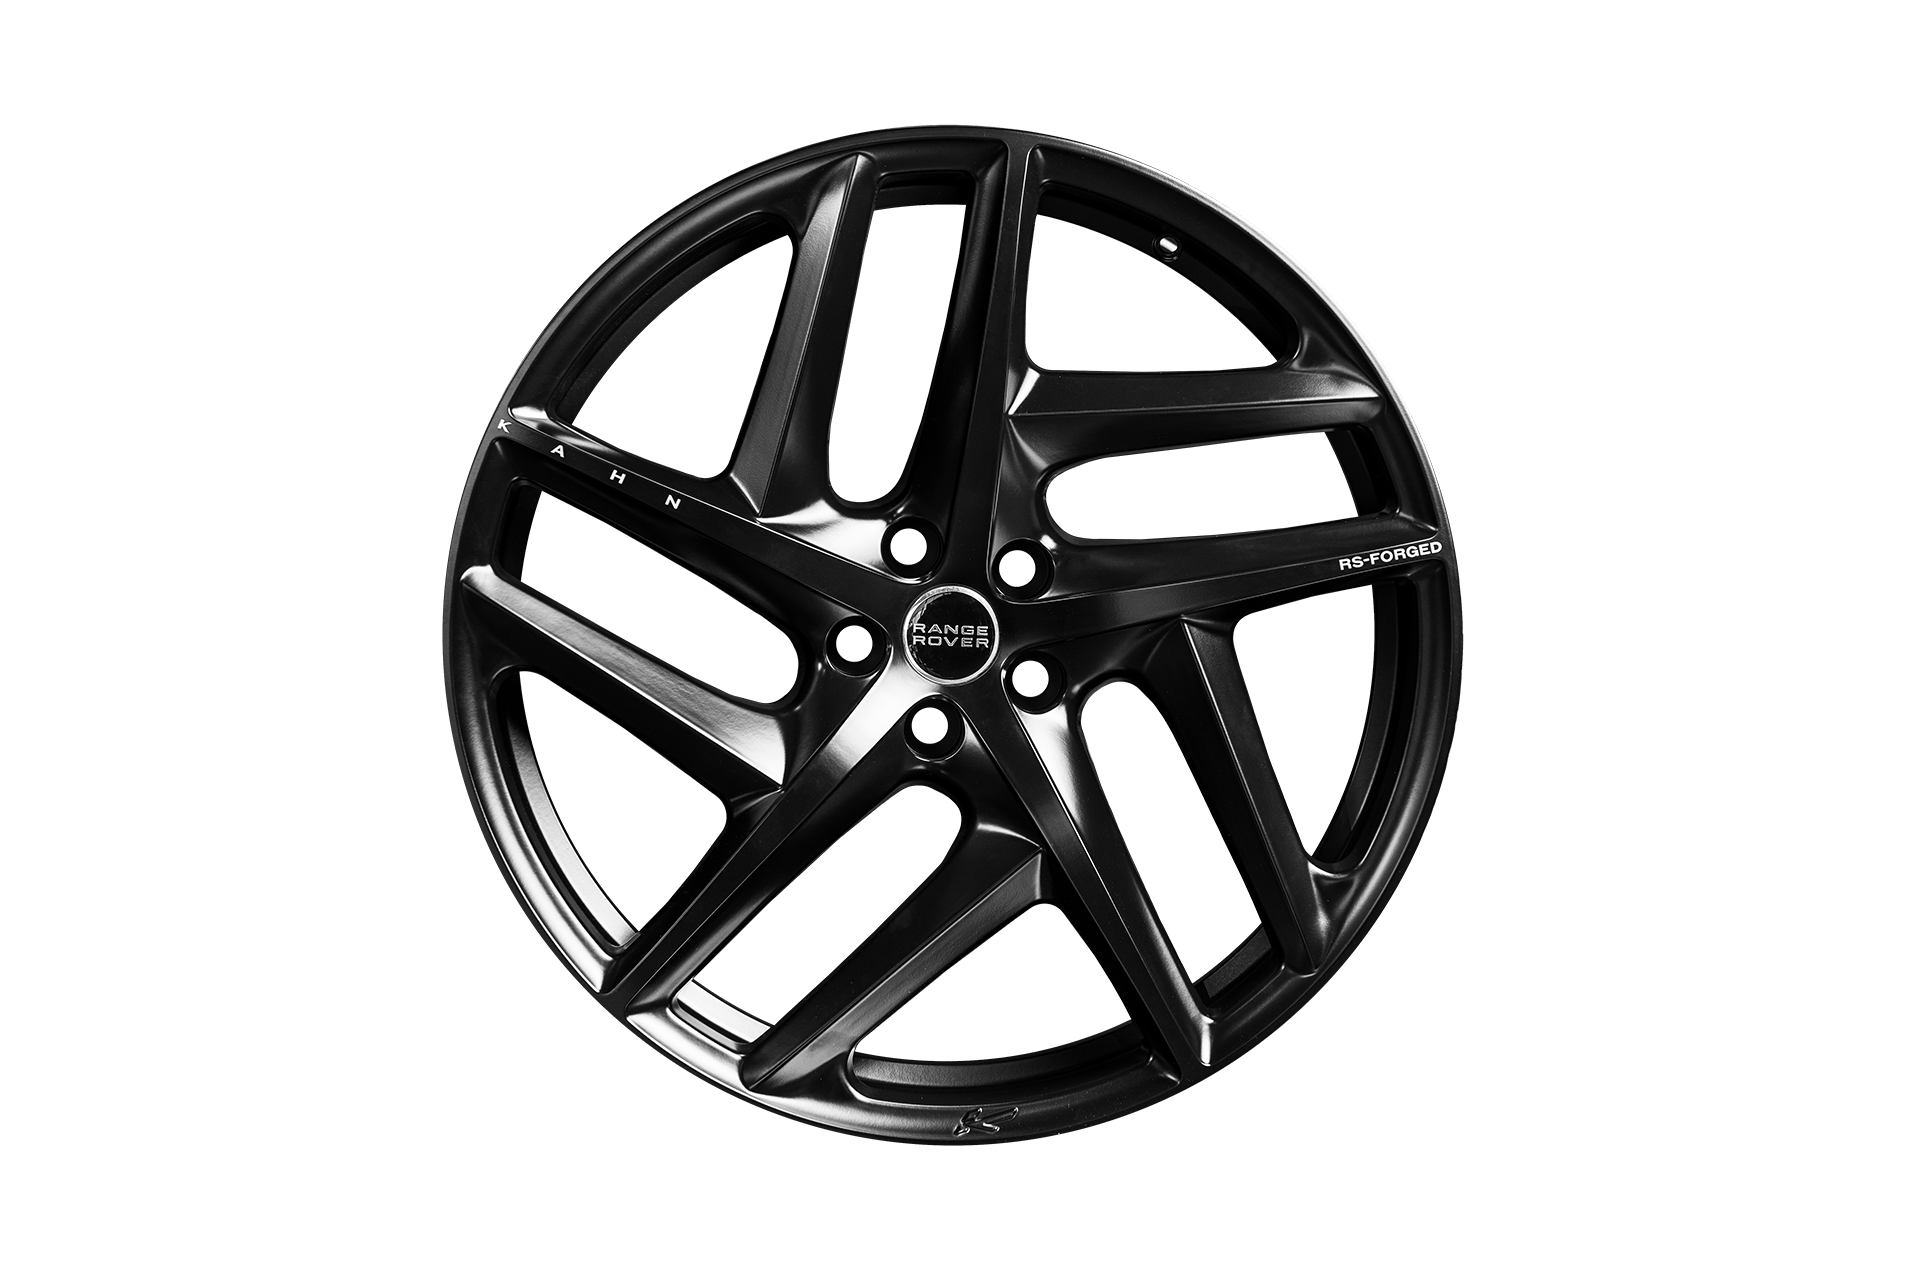 Range Rover (2012–2018) Type 52 RS-Forged Alloy Wheels